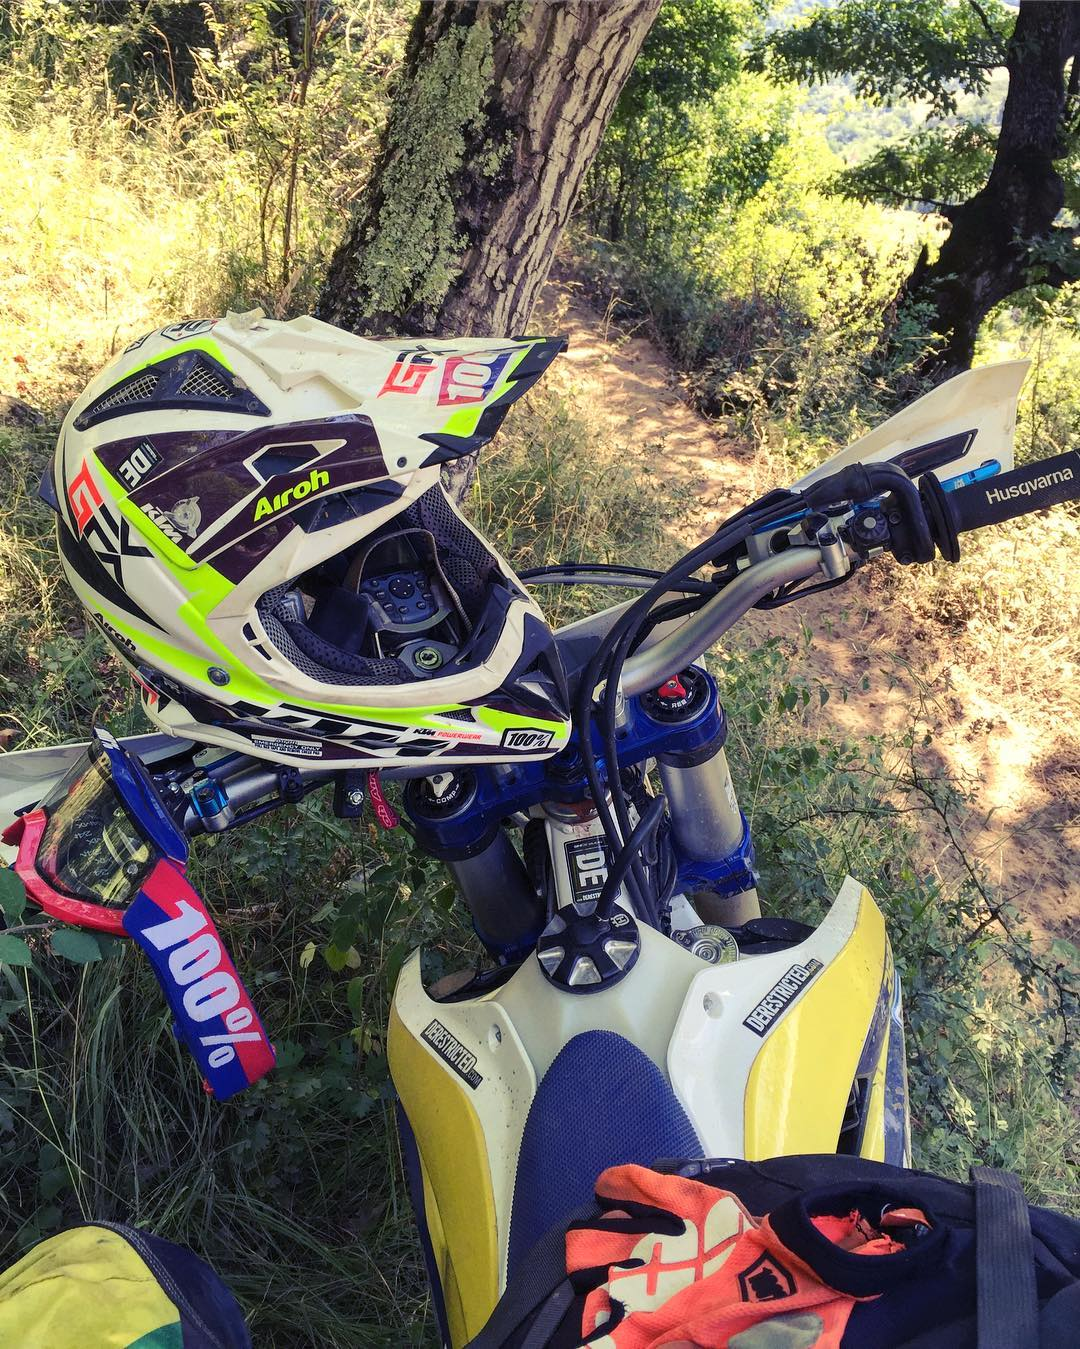 Throwback to one of the best and most exhausting weeks riding ever at #Romaniacs . Wish I had time to make it back again.. maybe next year 🙈 #enduro #husqvarna #fe350 #ride100percent